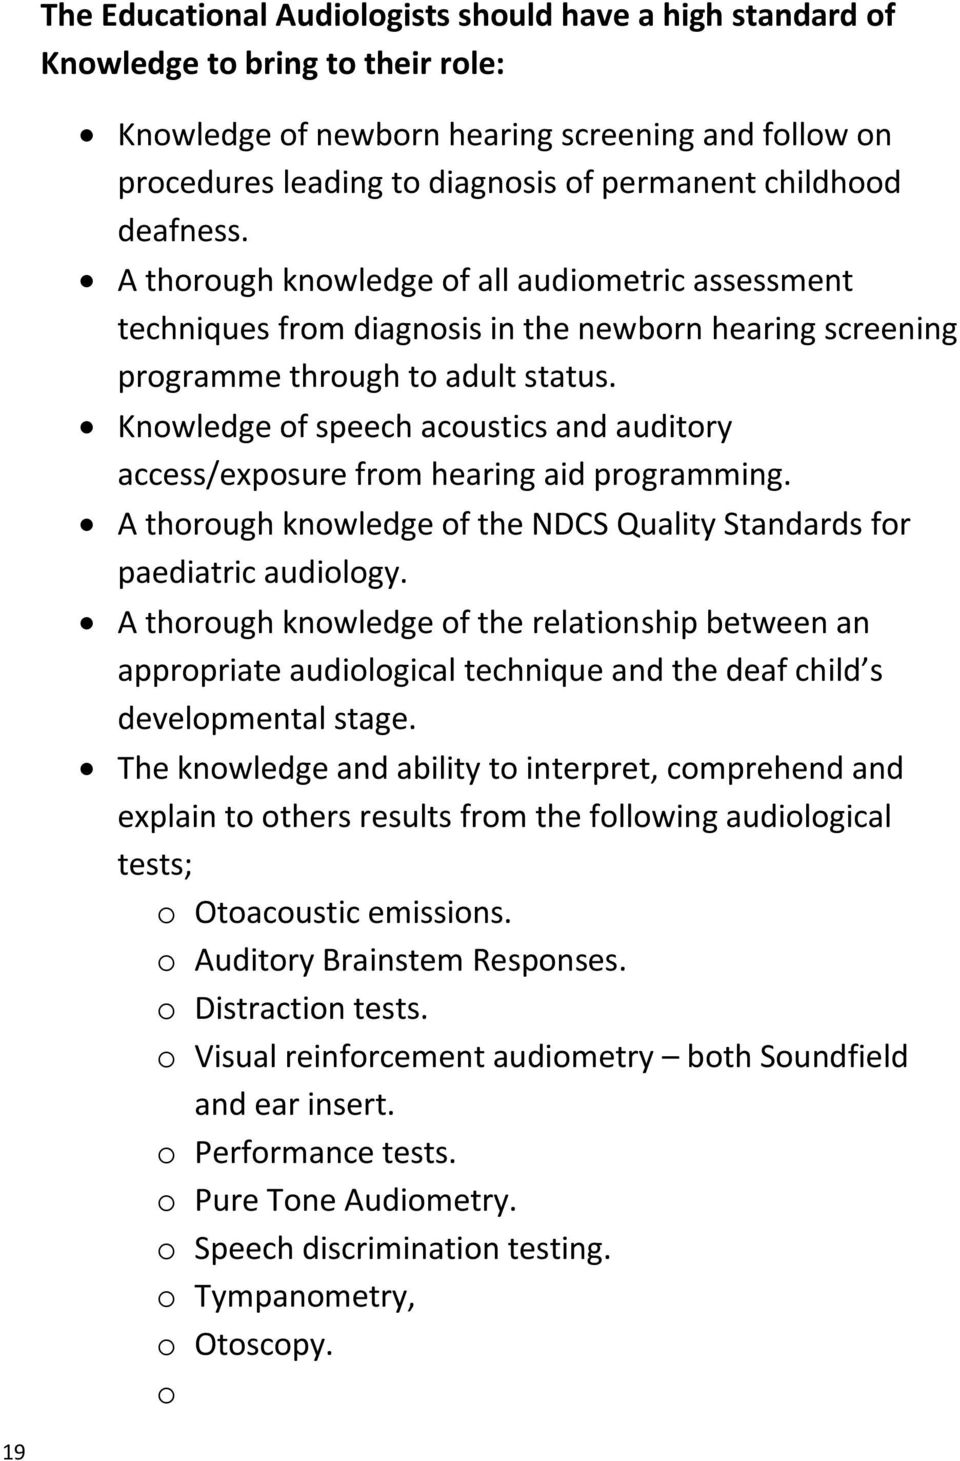 Knowledge of speech acoustics and auditory access/exposure from hearing aid programming. A thorough knowledge of the NDCS Quality Standards for paediatric audiology.